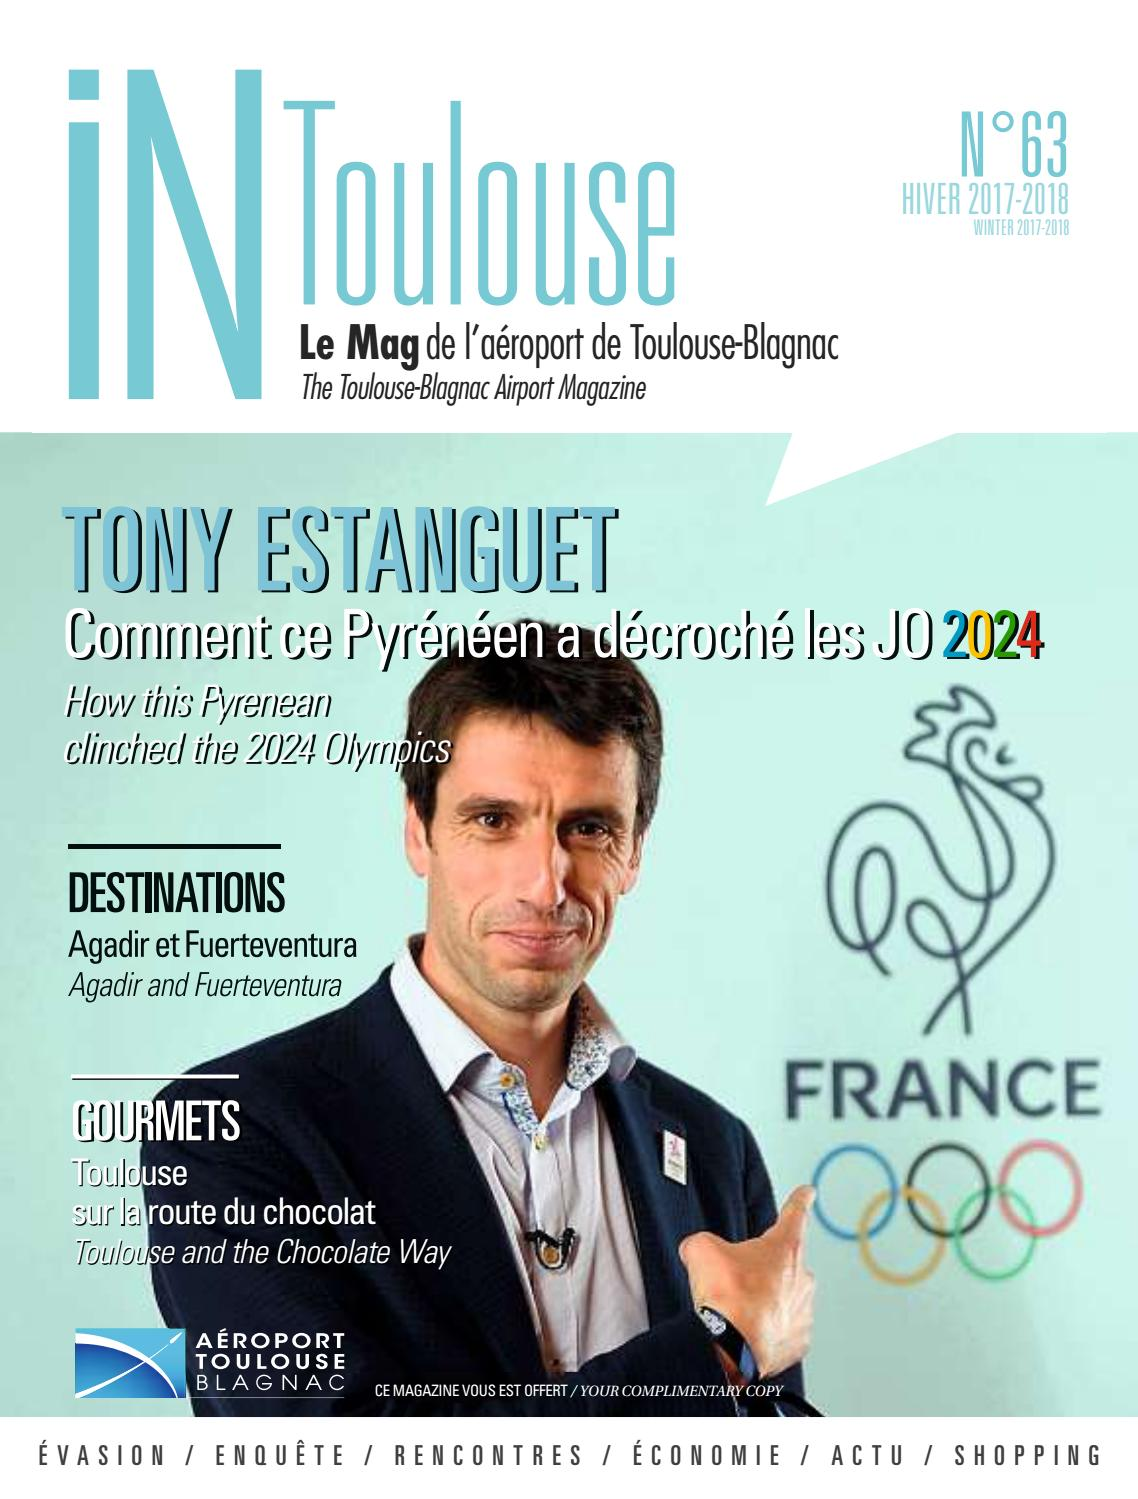 La Table À Jo Labège in toulouse n°63aéroport toulouse - issuu